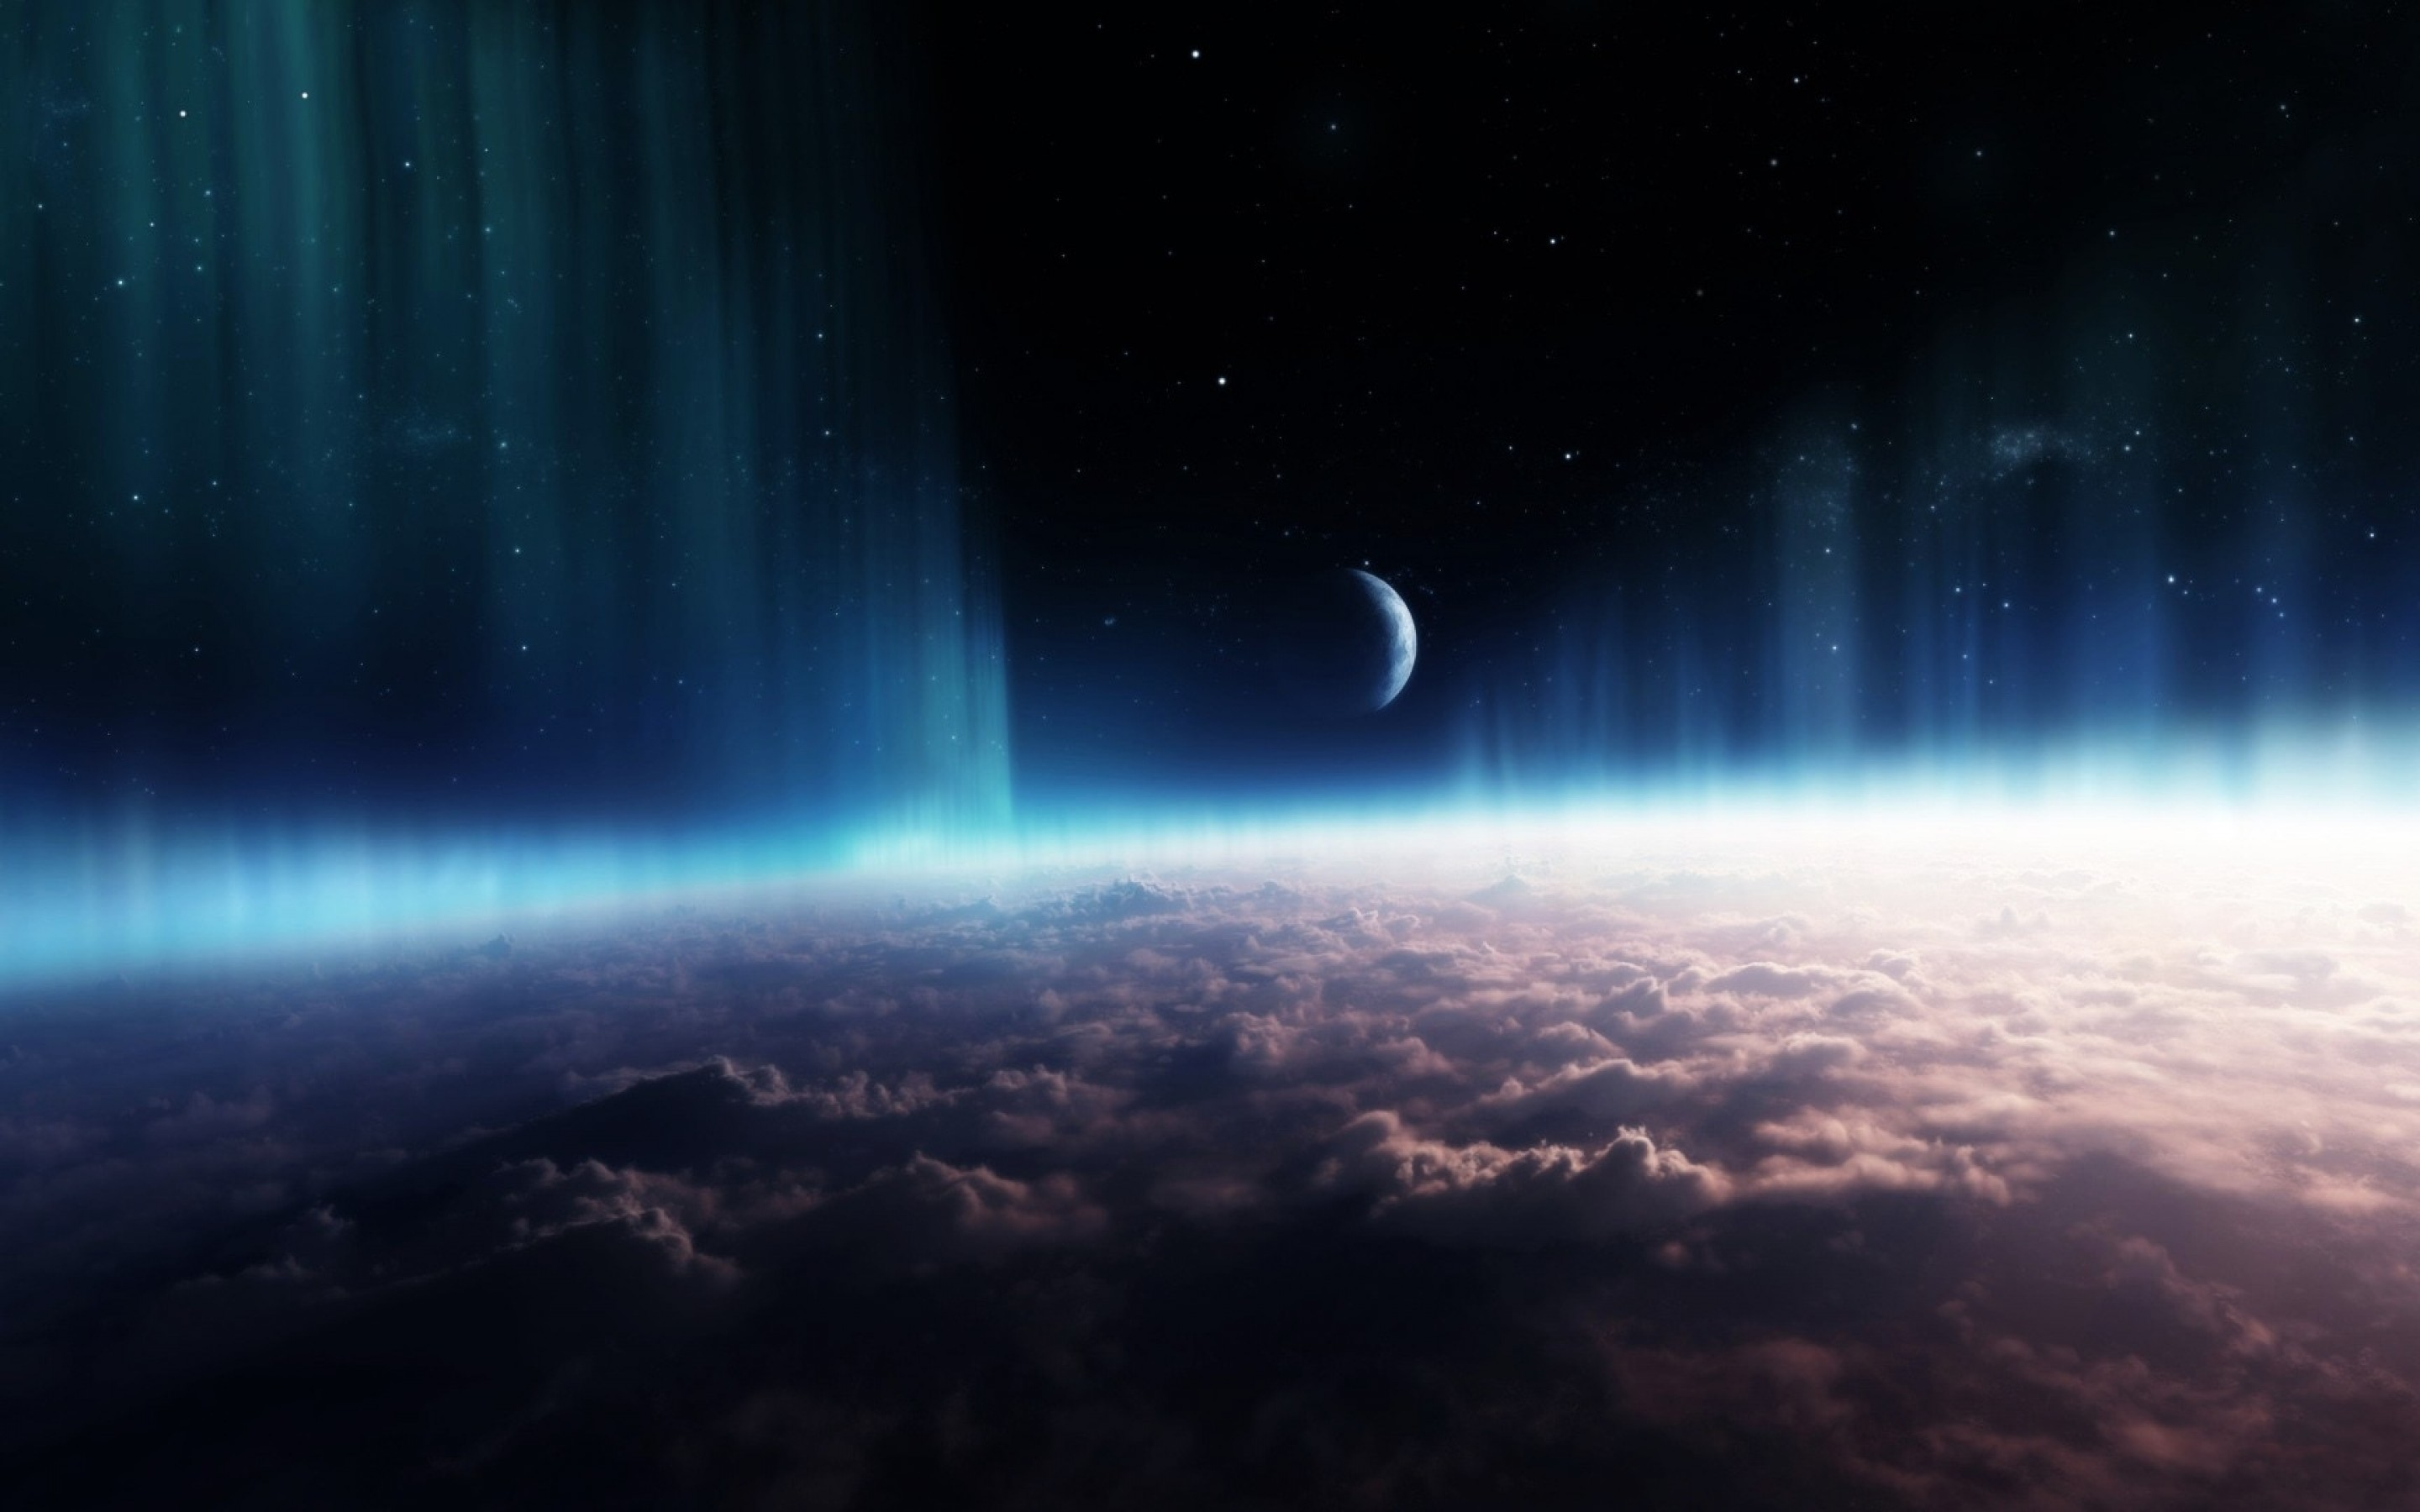 Wallpaper 3d Anime Space Wallpaper 26547 2880x1800px